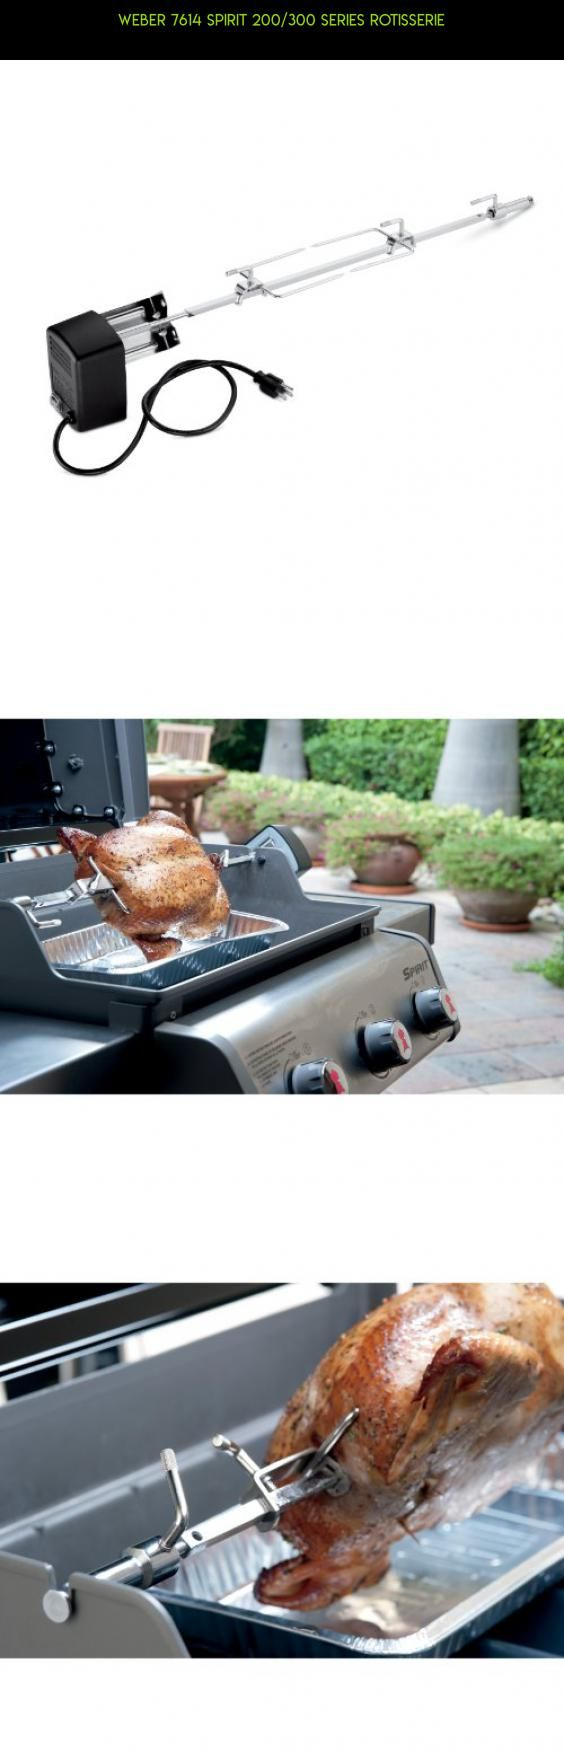 Weber 7614 Spirit 200/300 Series Rotisserie #parts #racing #technology #weber #products #shopping #tech #gadgets #kit #grills #fpv #camera #drone #plans #accessories